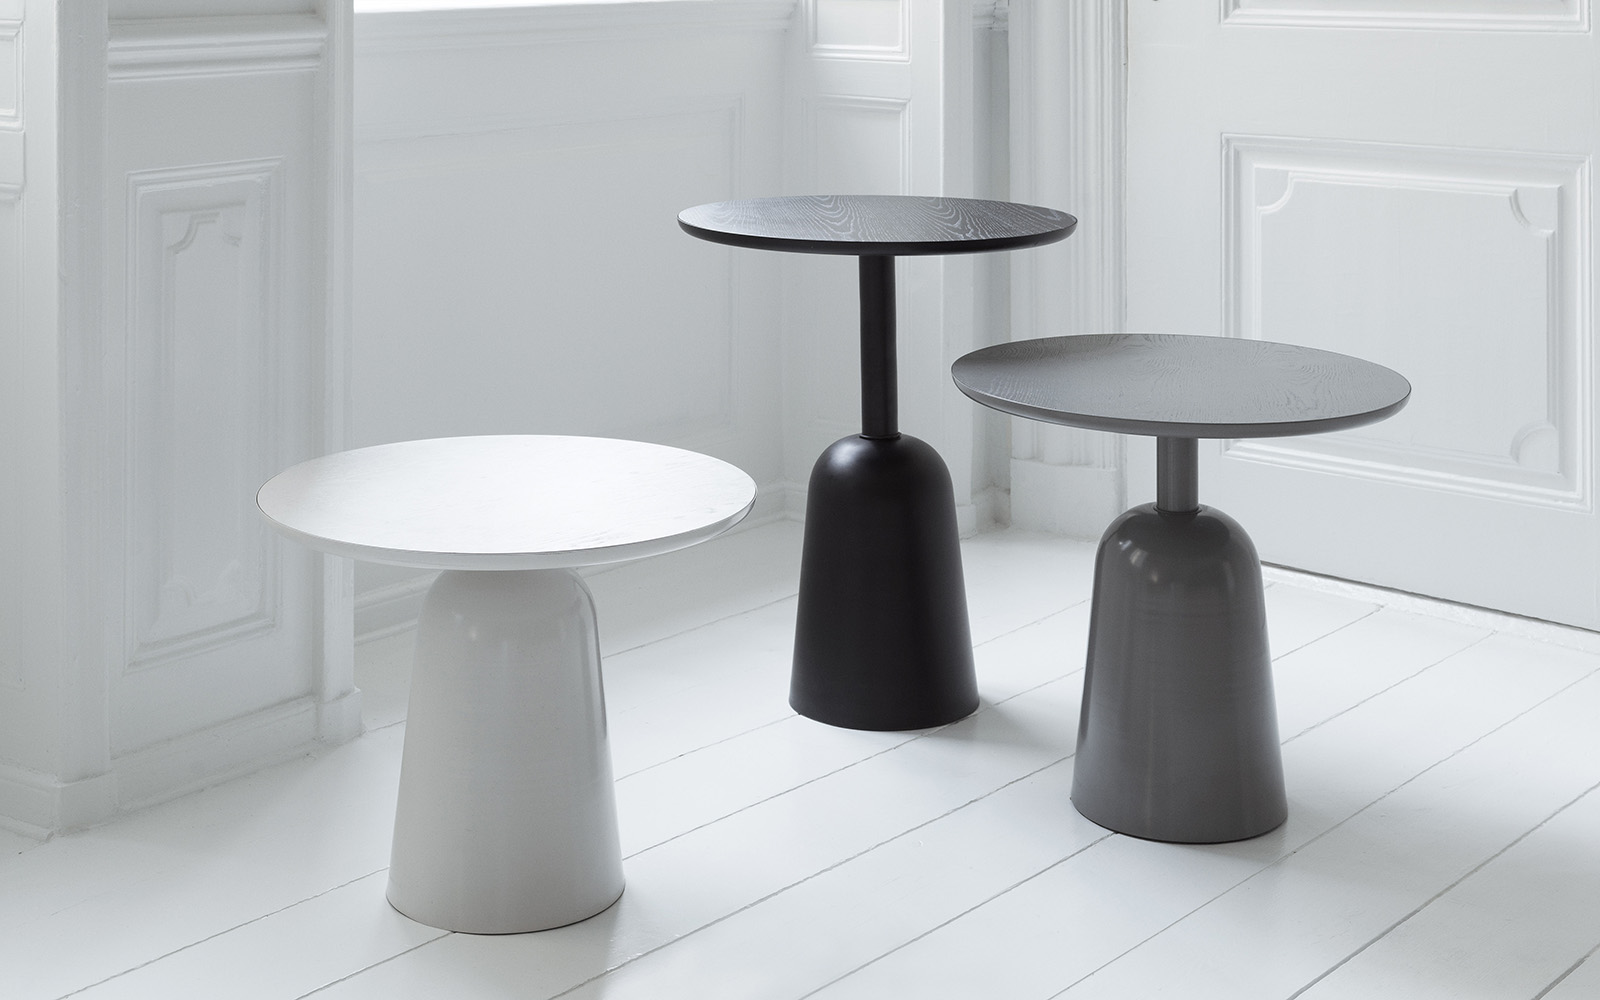 Turn Table Black, Grey, Warm grey - Normann Copenhagen